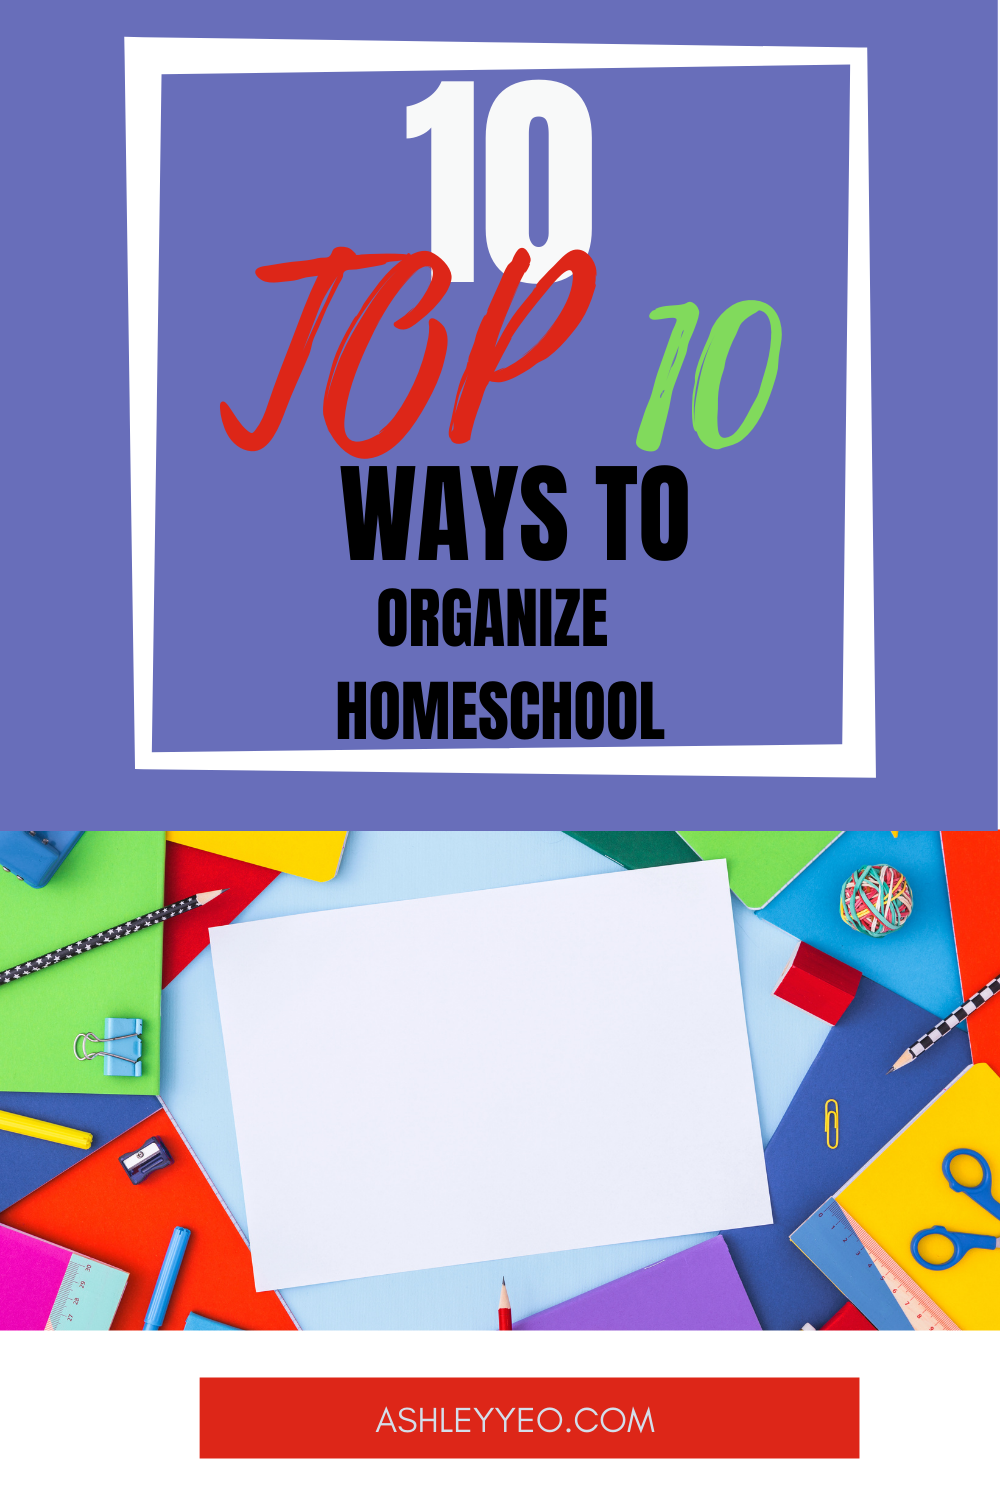 Top 10 Ways to Organize Homeschool